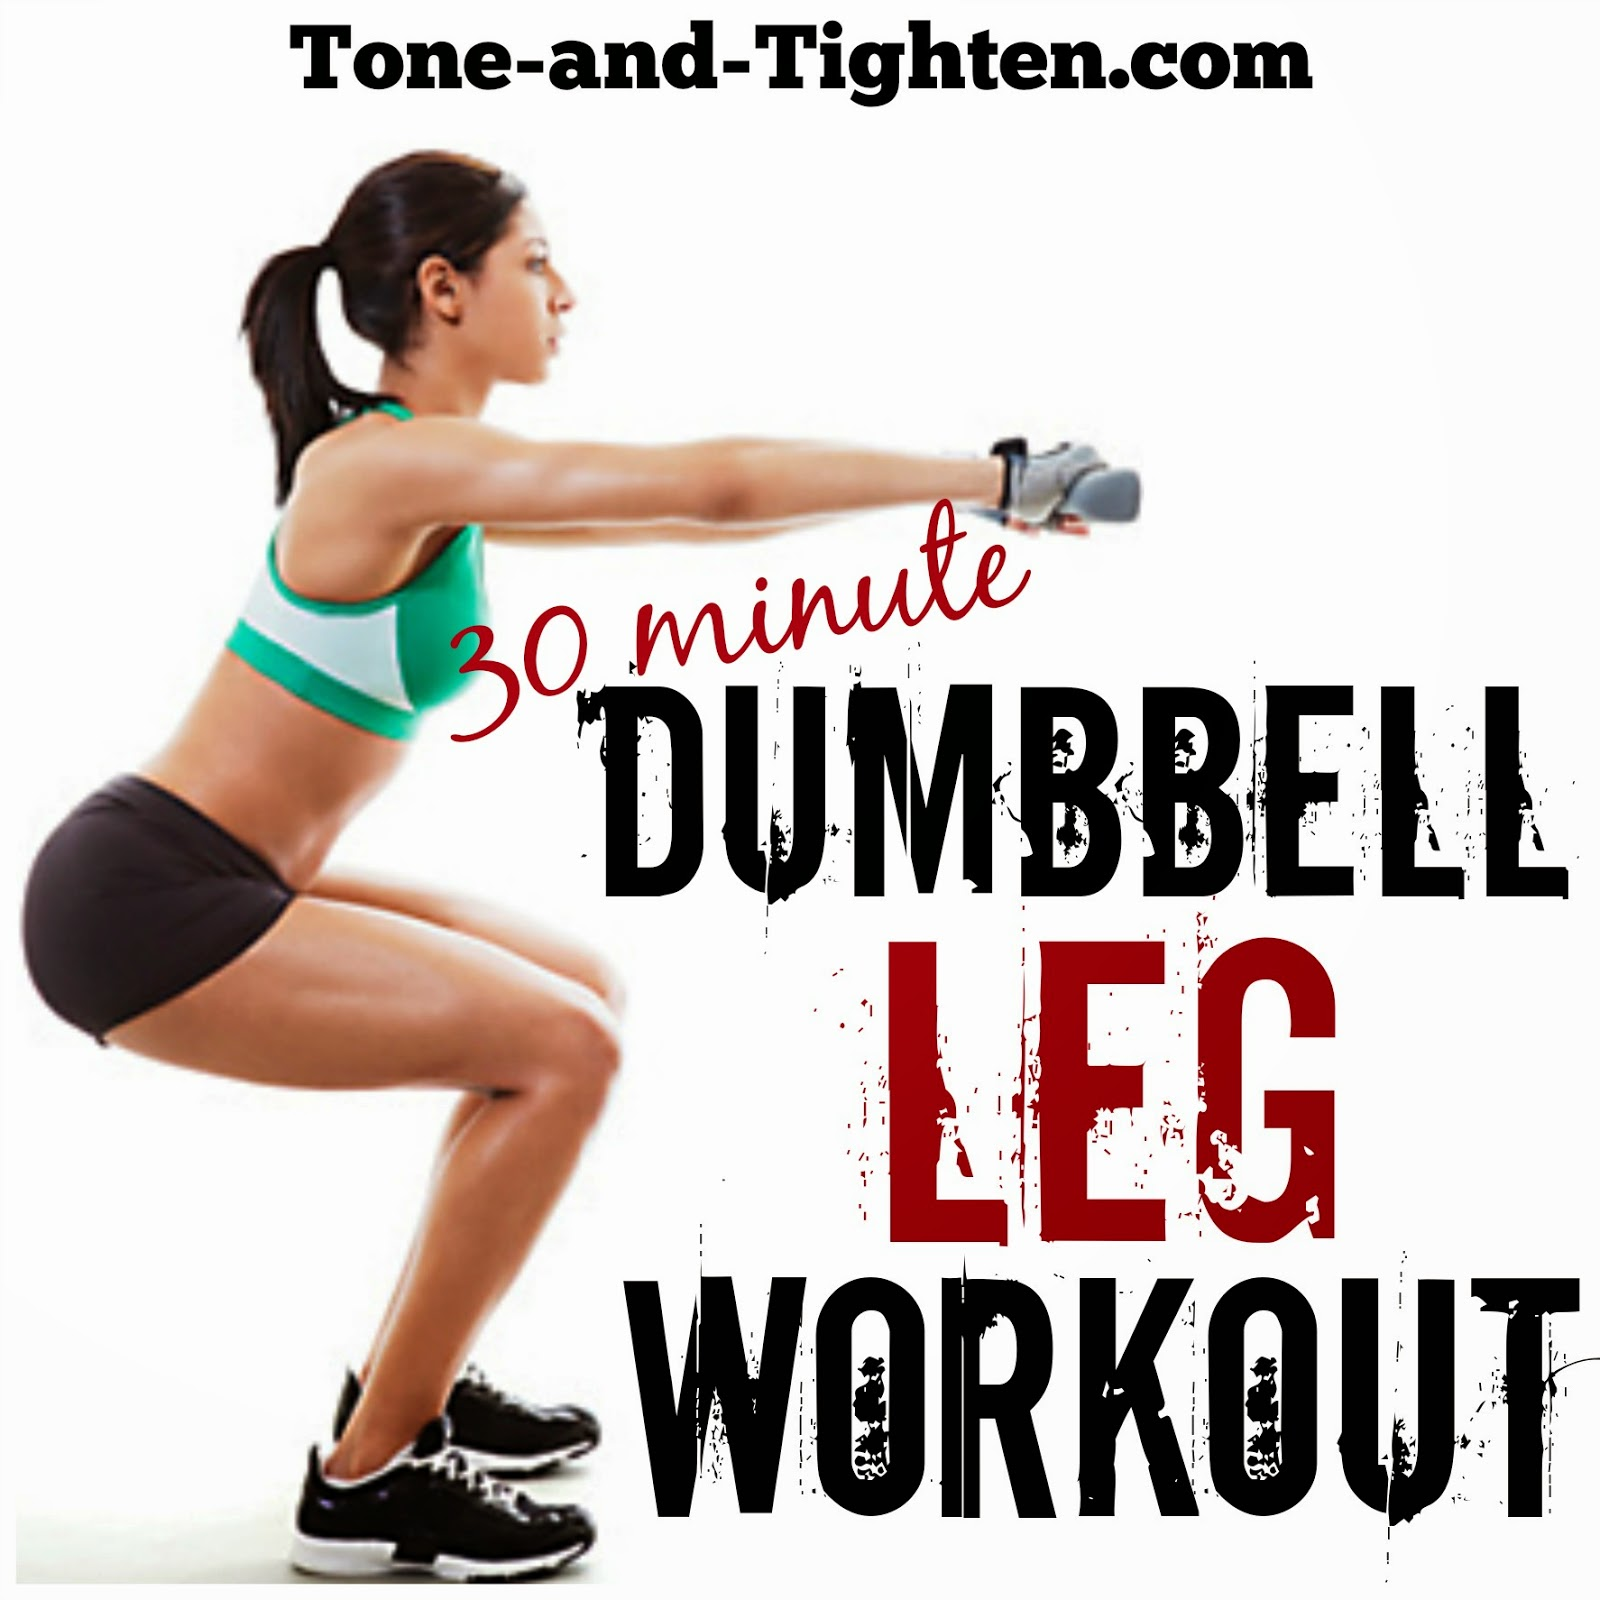 https://tone-and-tighten.com/2014/05/30-minute-dumbbell-leg-workout-best-free-weight-exercises-for-your-legs.html